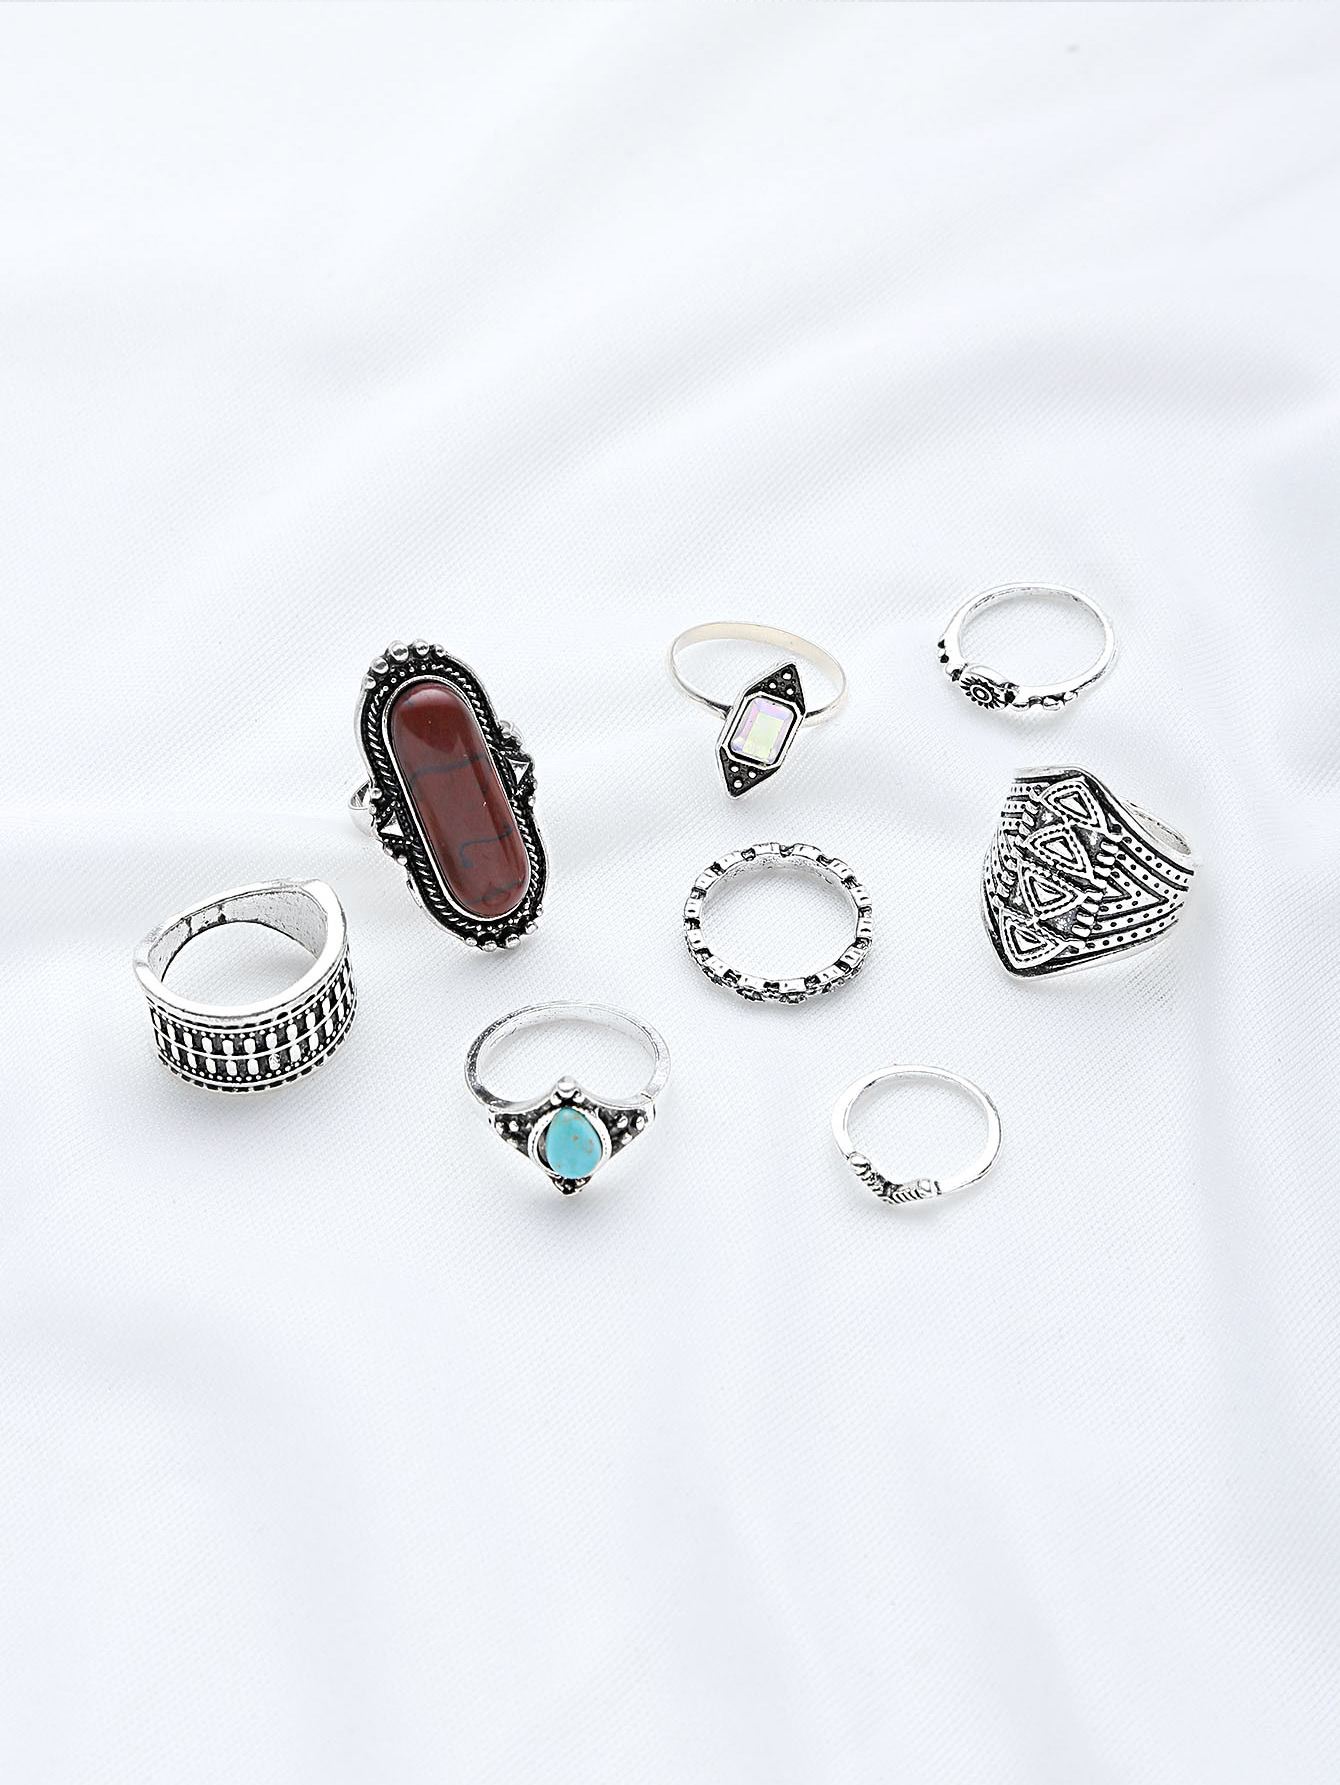 Gemstone Design Ring Set 10pcs antique gold gemstone ring set